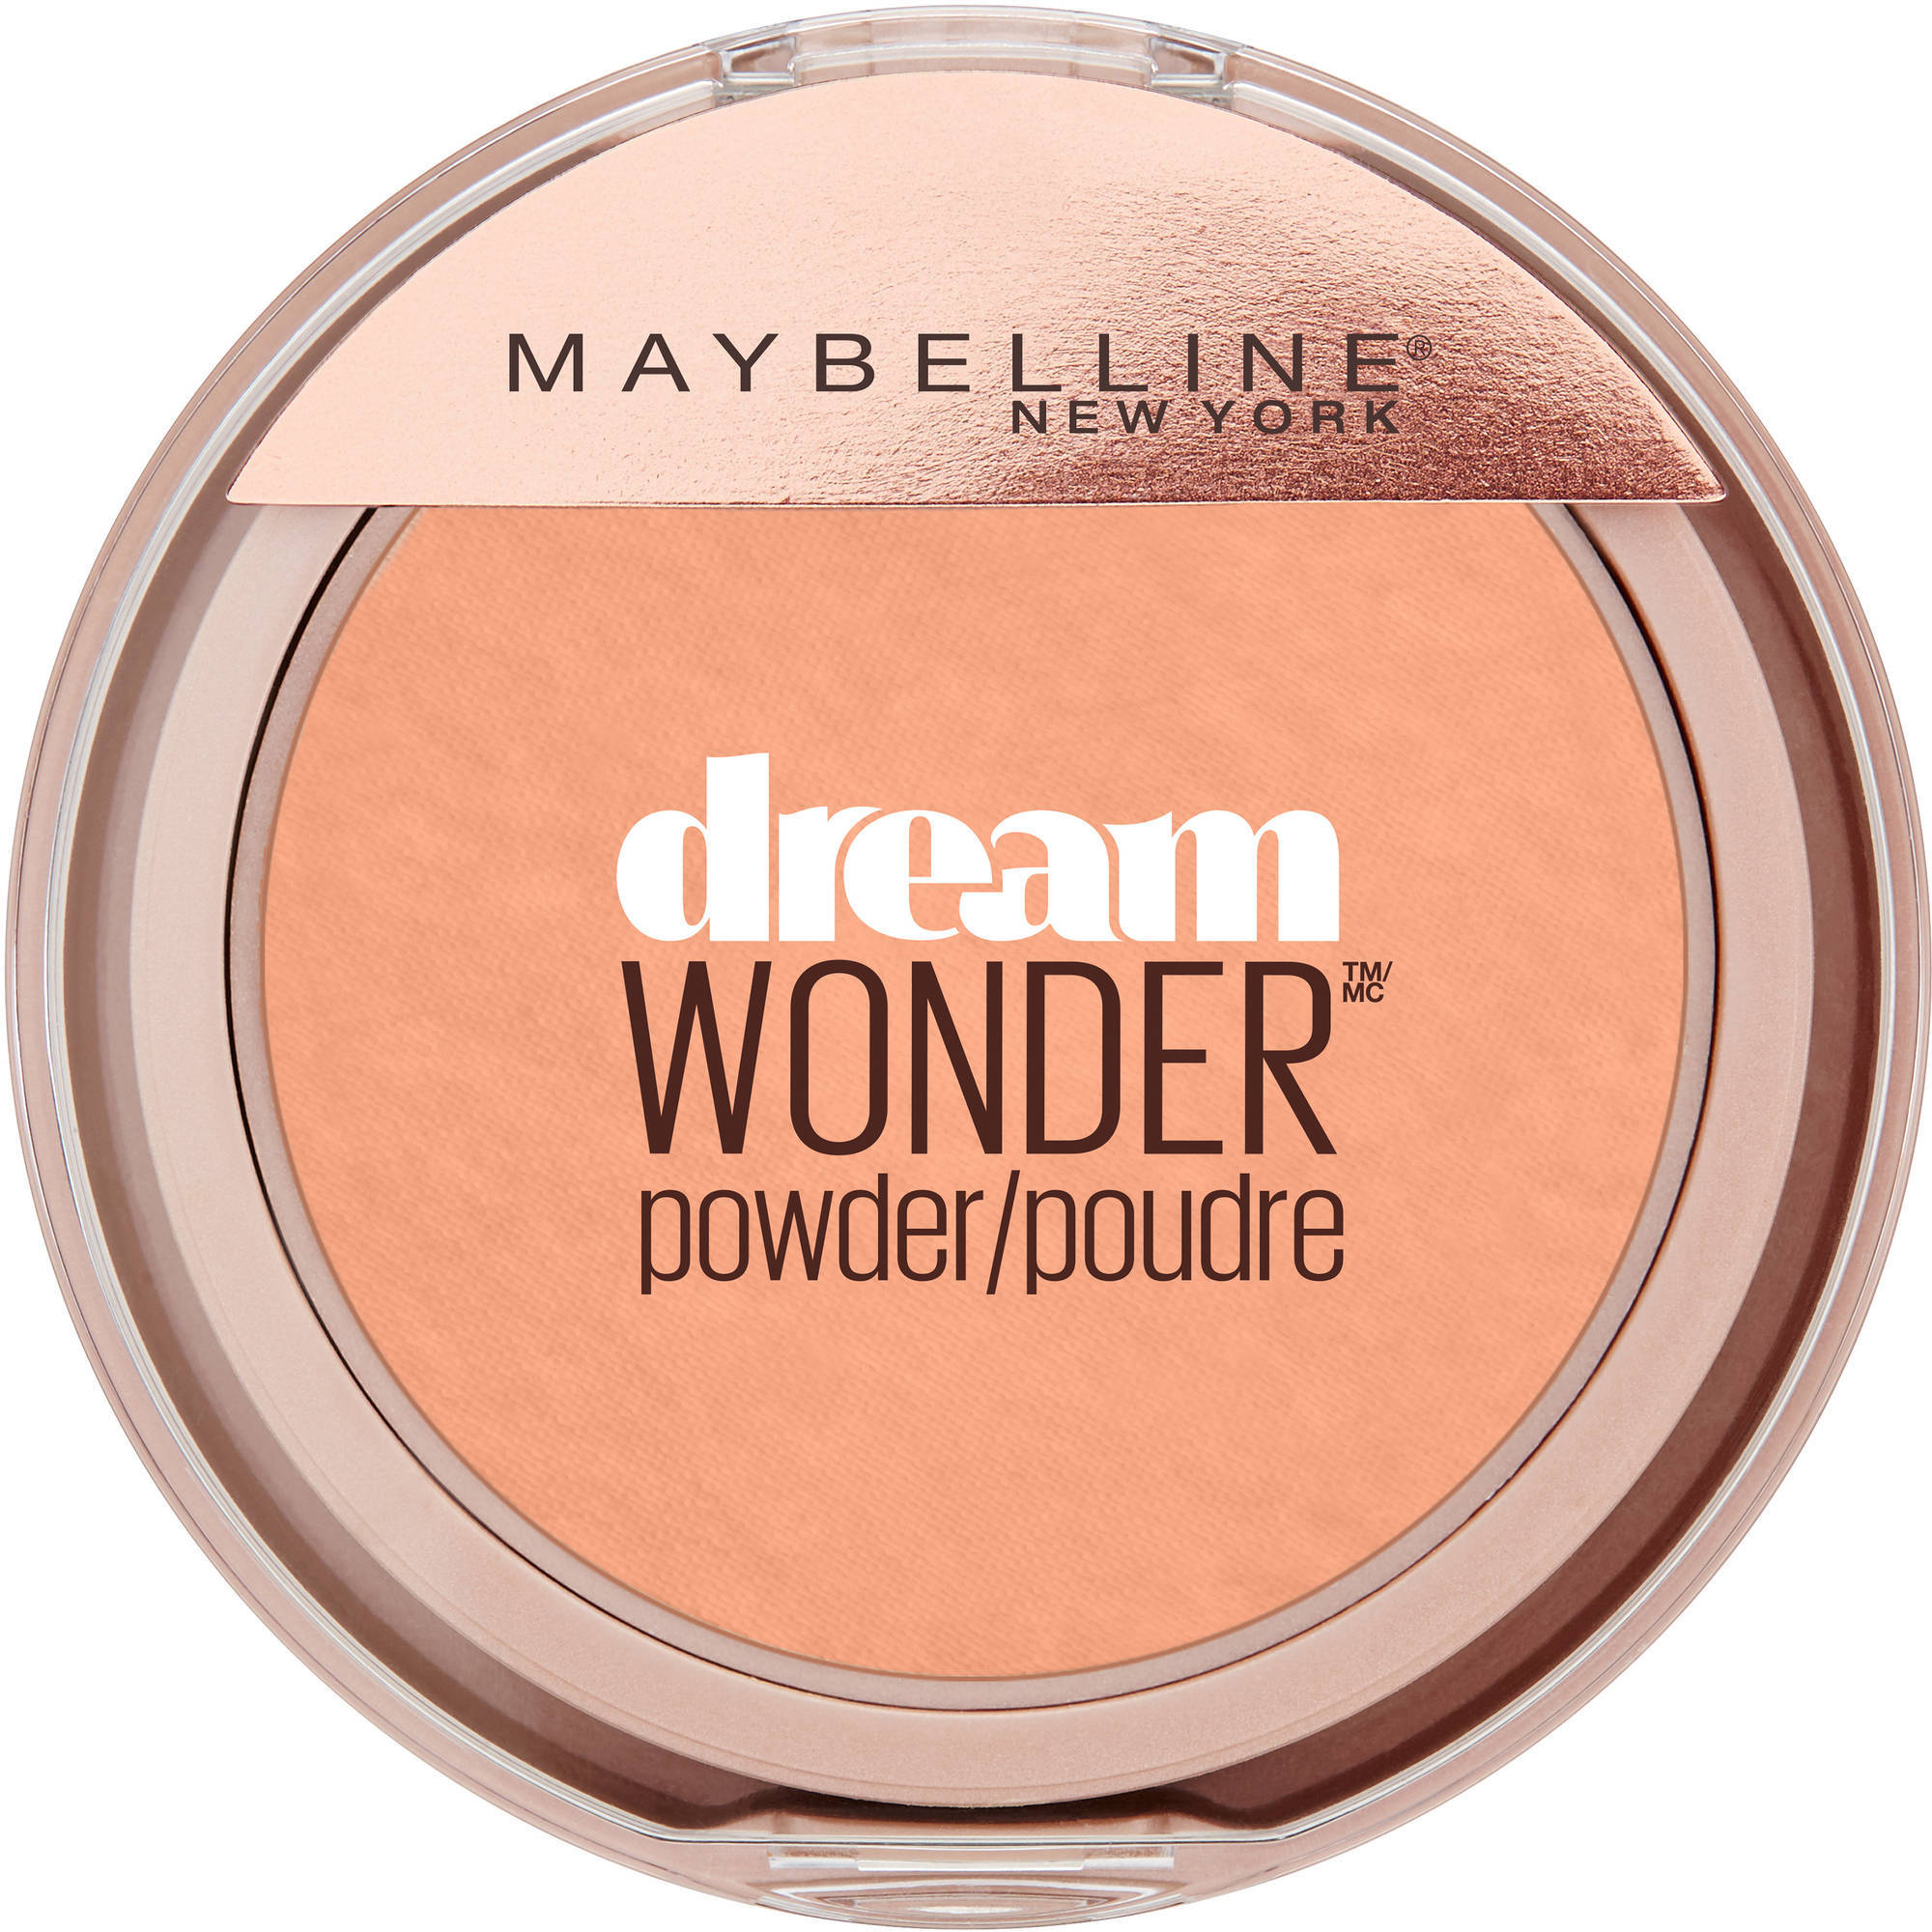 Maybelline New York Dream Wonder Powder